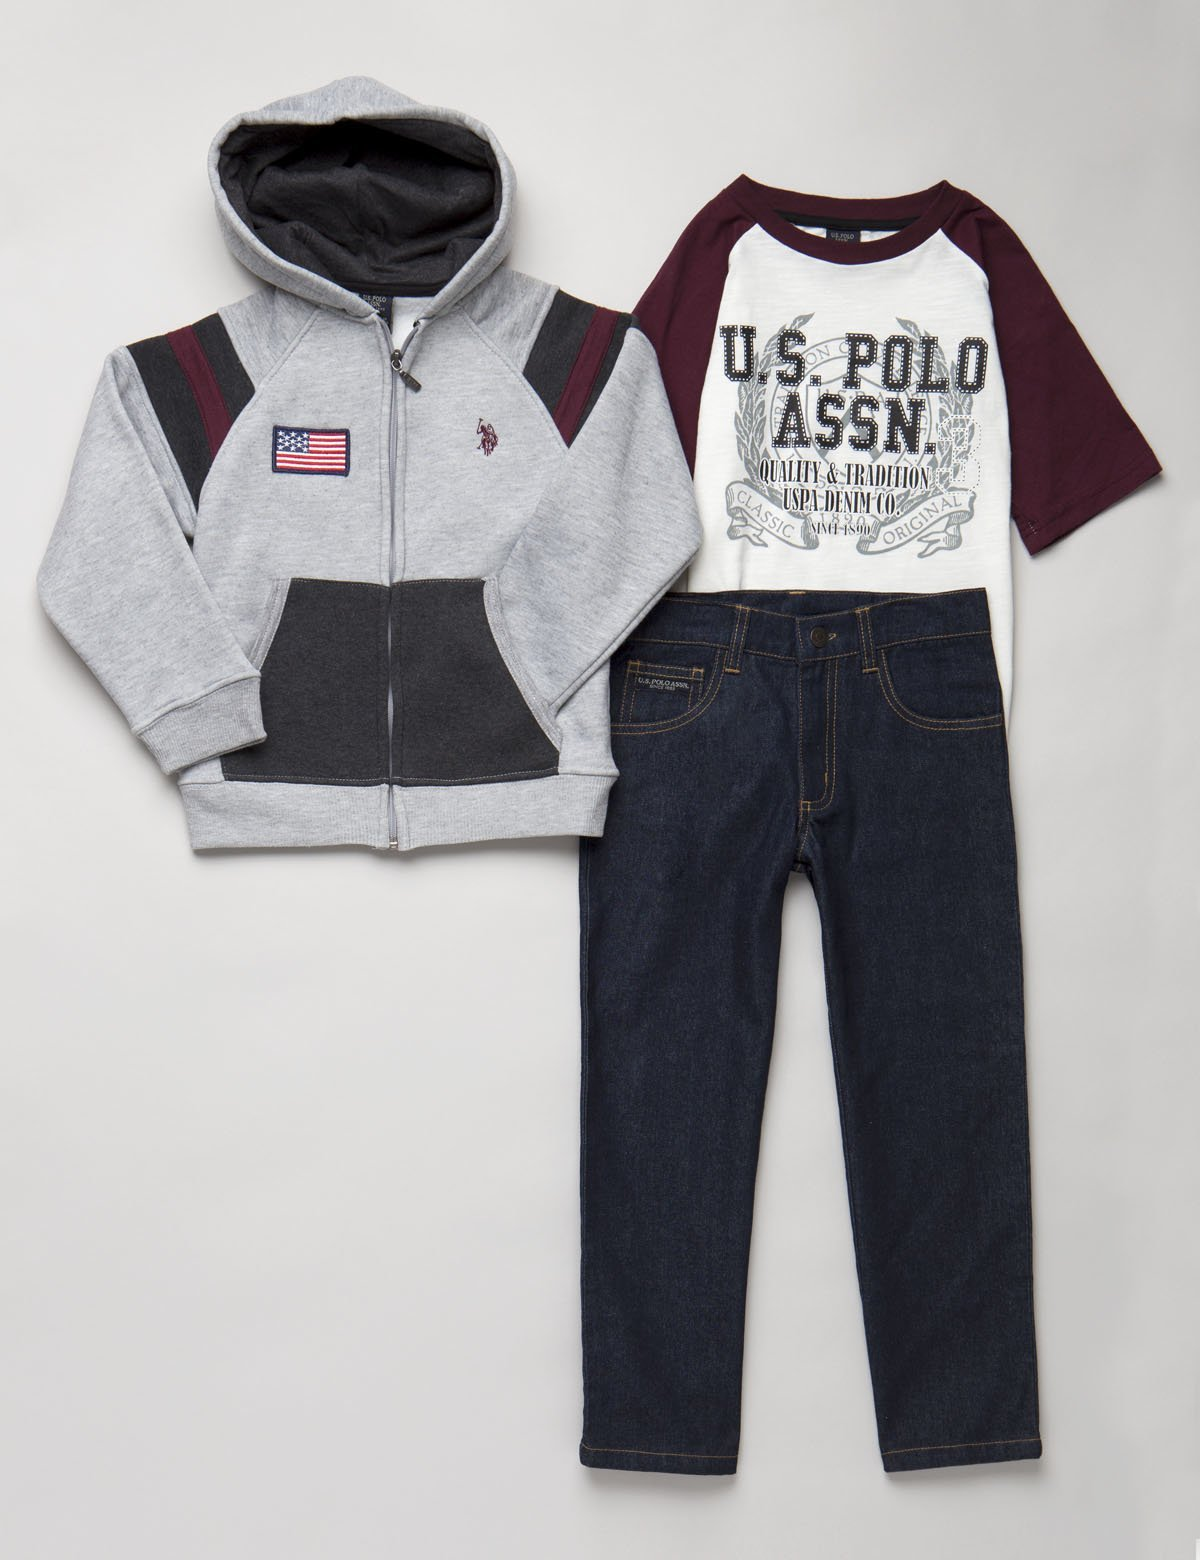 BOYS 3 PIECE SET - FLEECE, TEE & JEANS